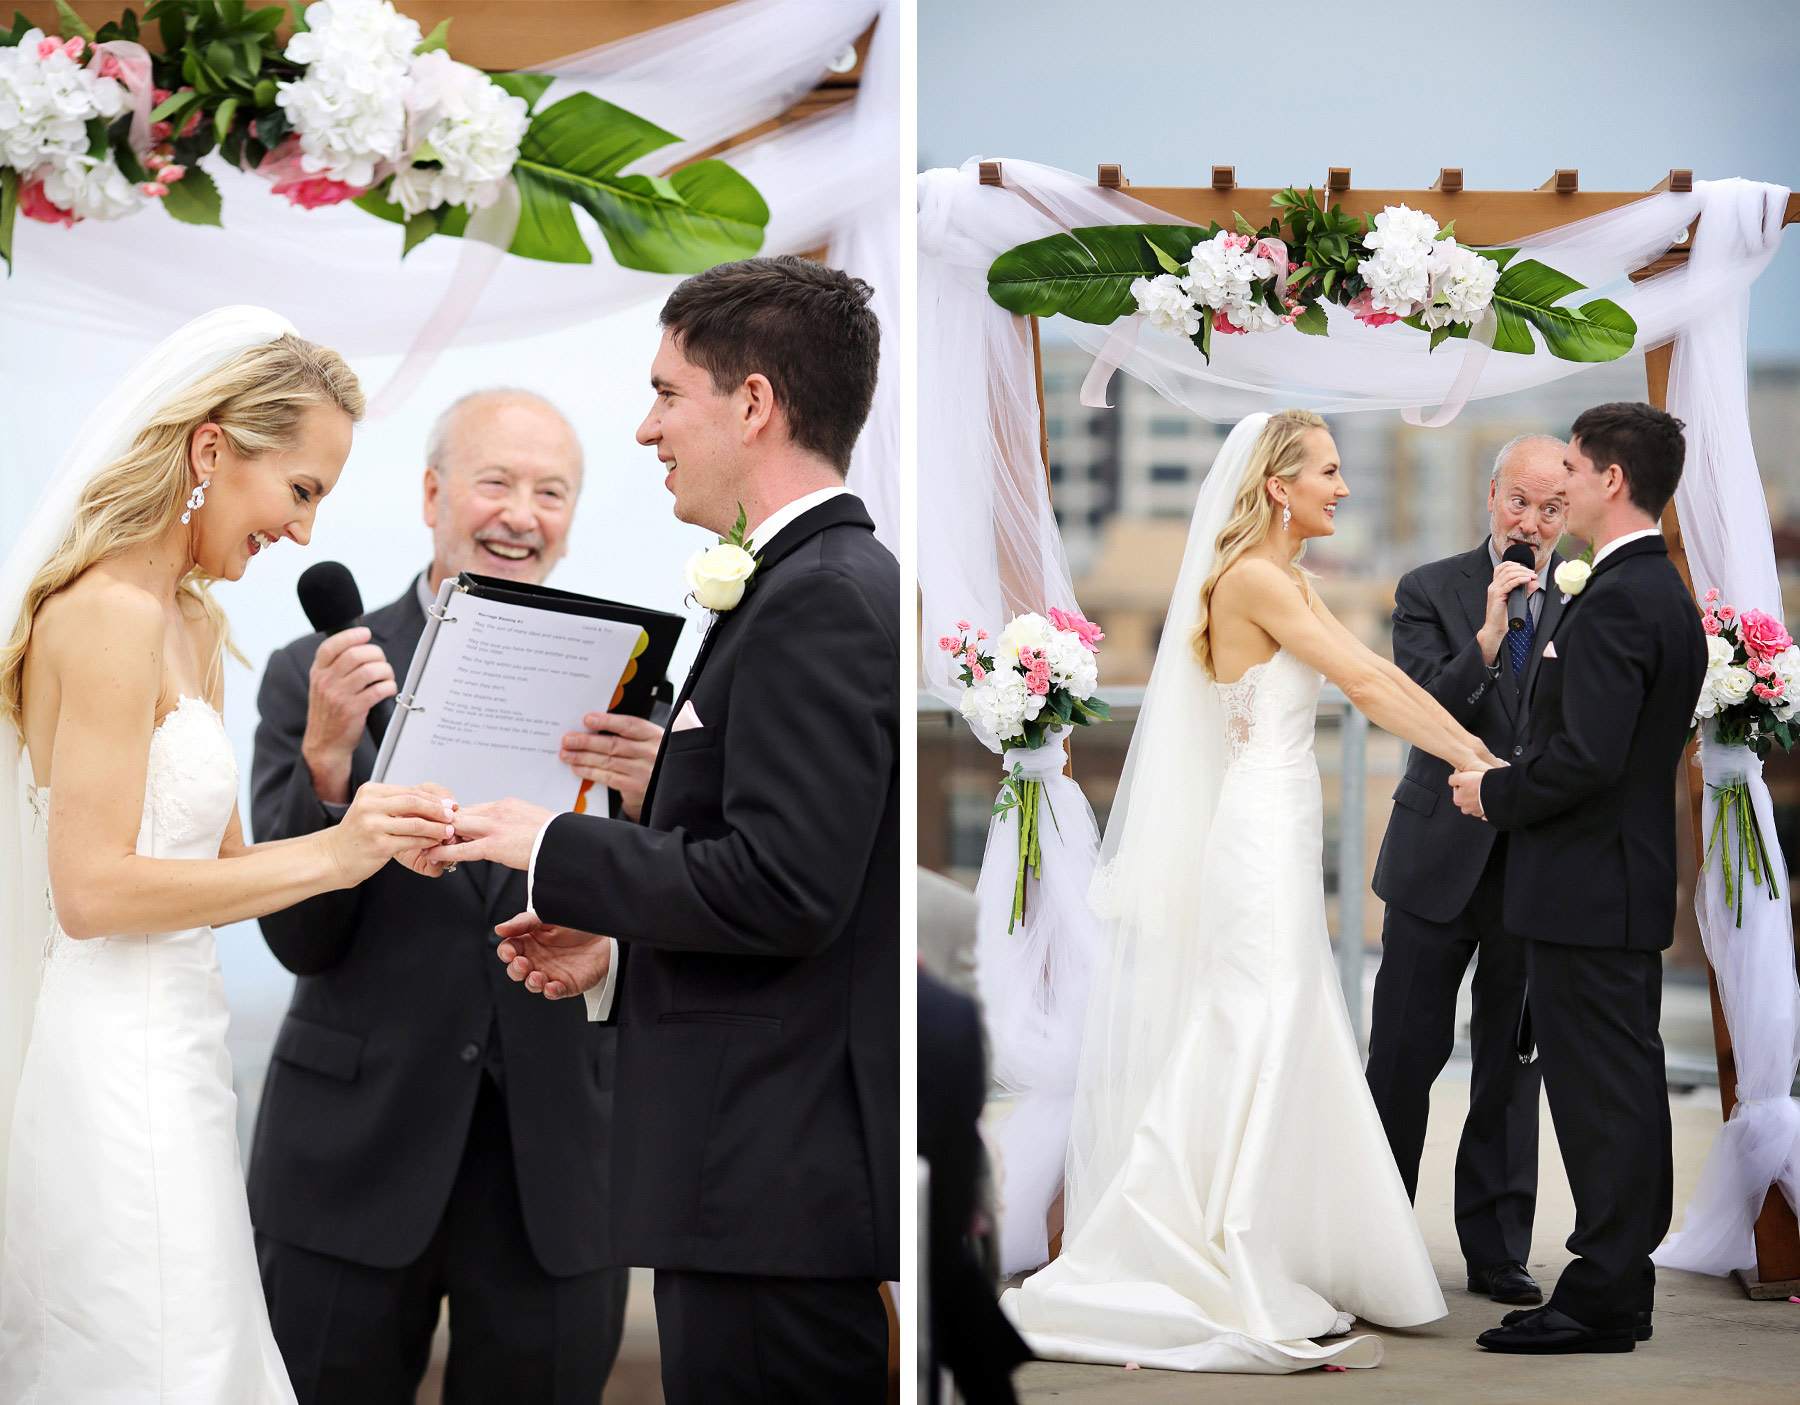 13-Saint-Paul-Minnesota-Wedding-Photographer-by-Andrew-Vick-Photography-Summer-Abulae-Ceremony-Groom-Bride-Dress-Vows-Rings-Laura-and-Tim.jpg